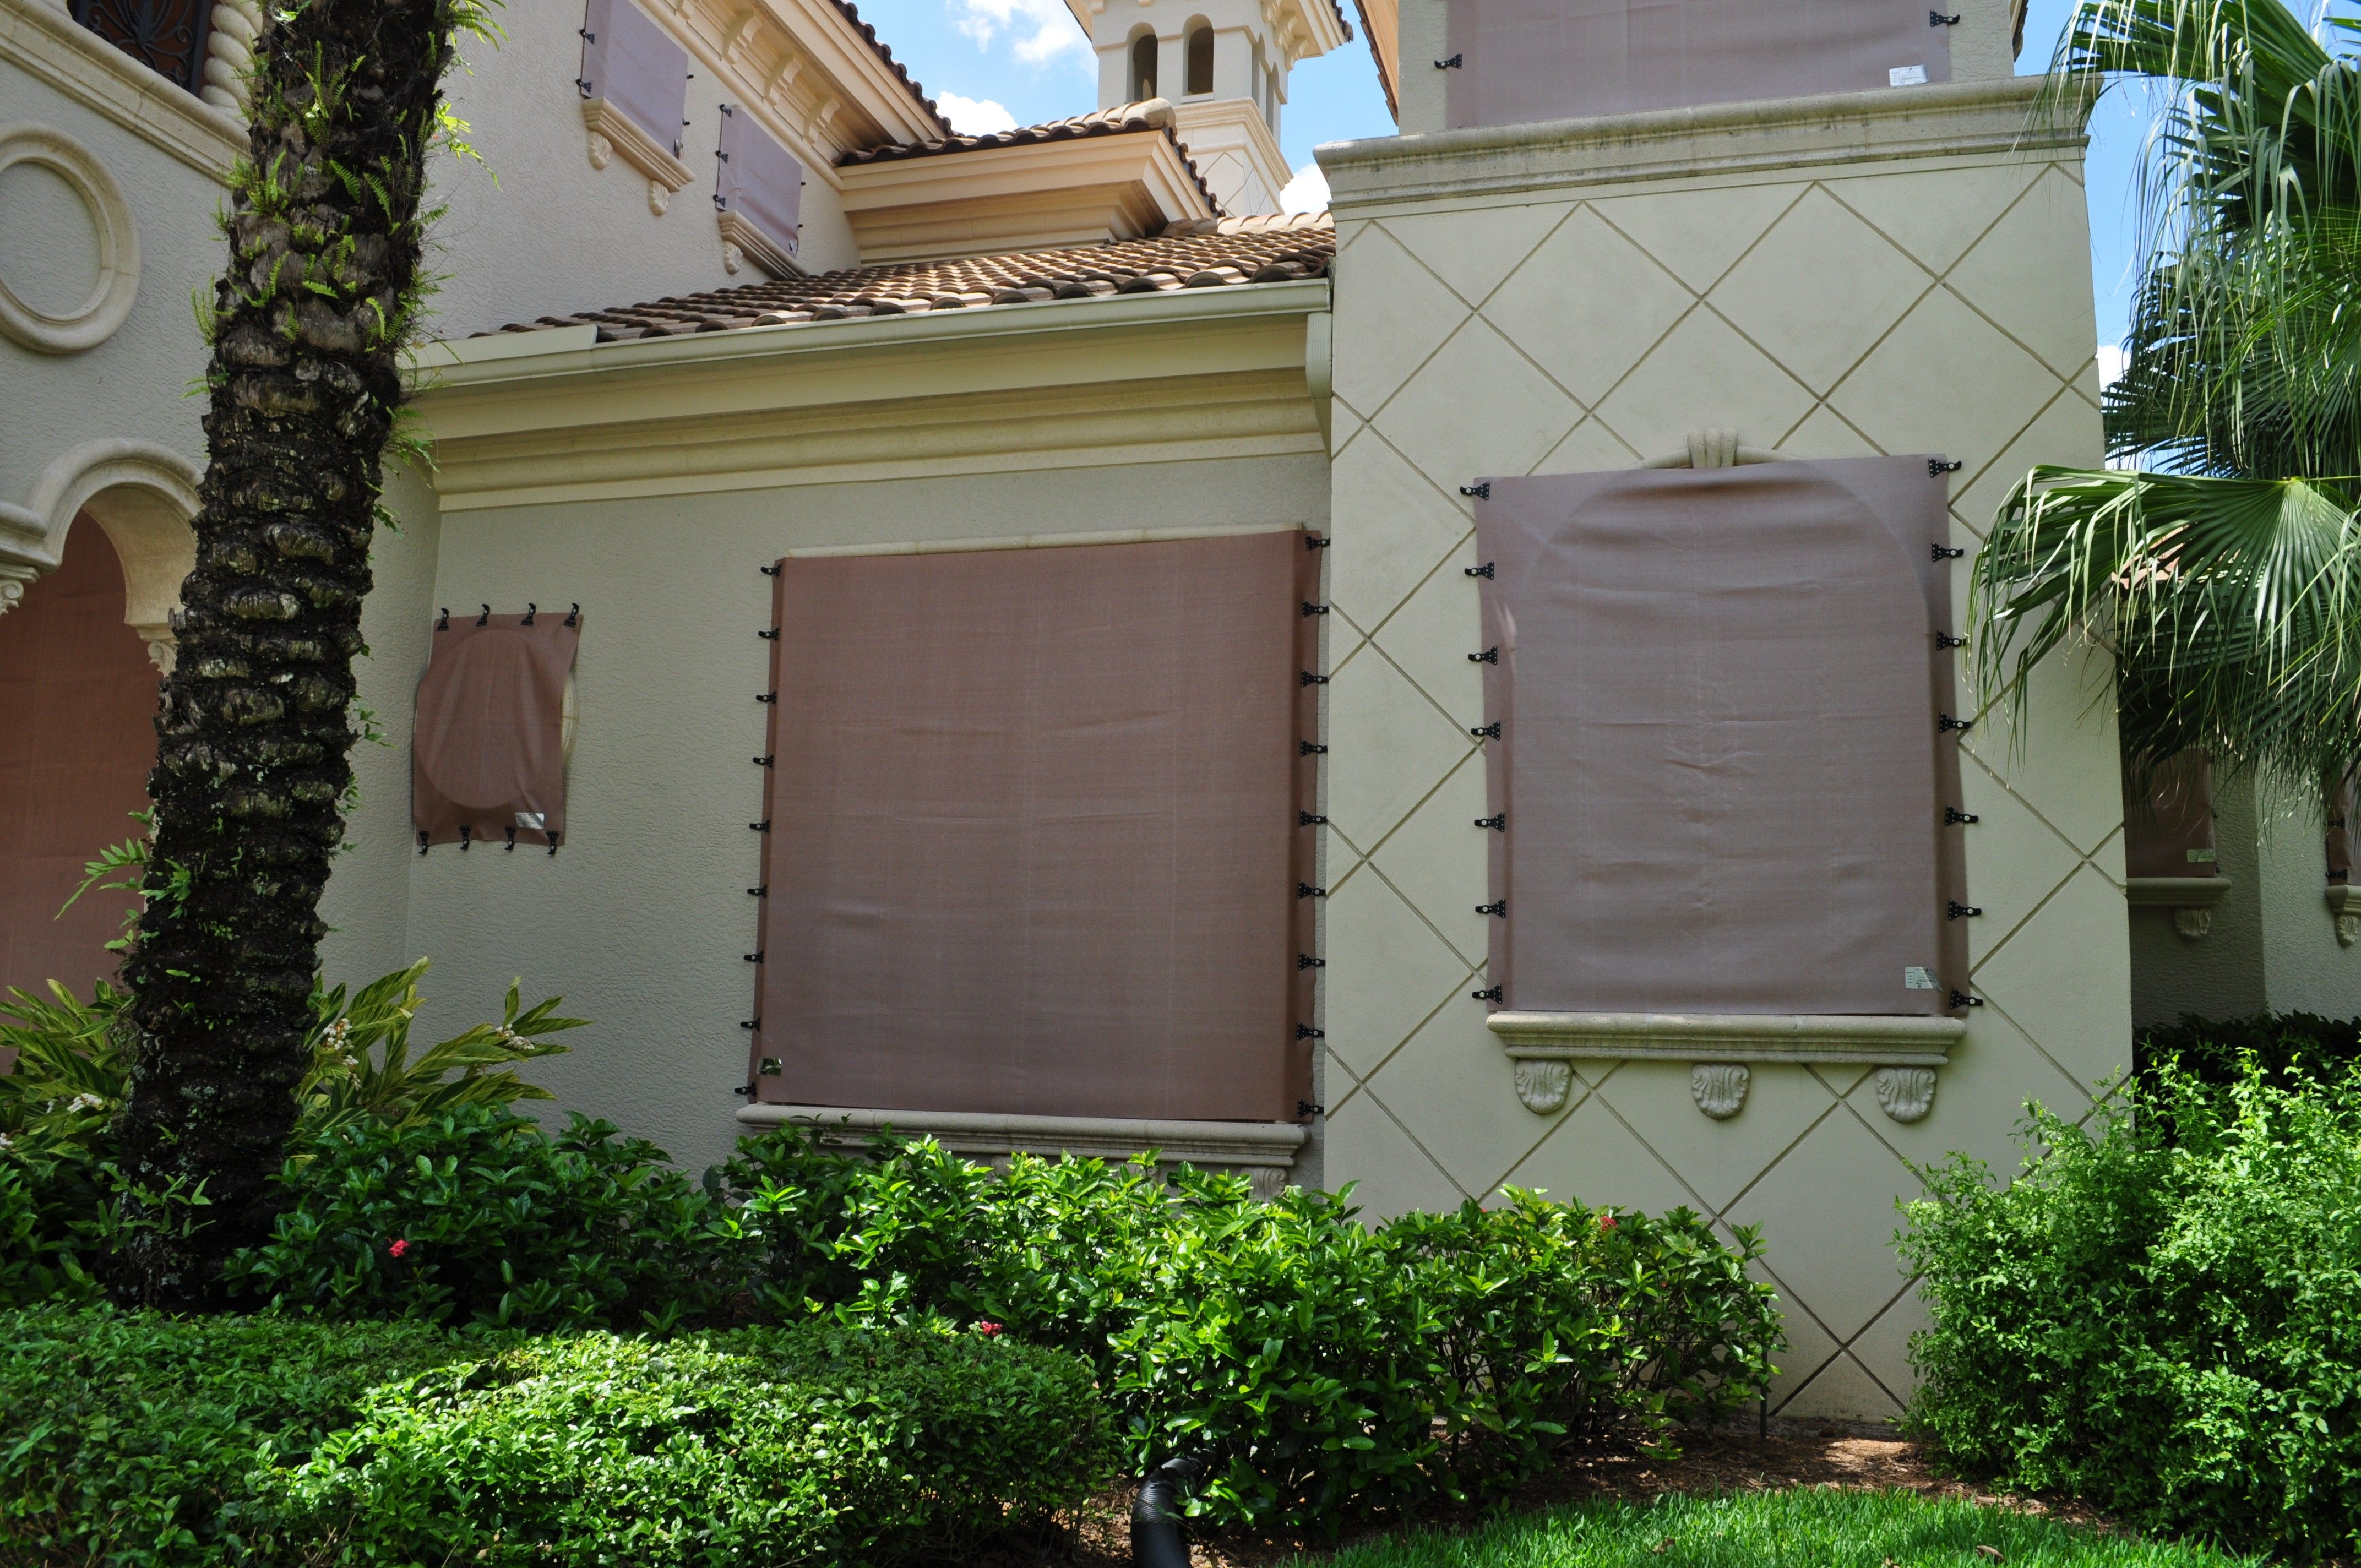 Astroguard Hurricane Fabric Protection From Naples Shutter Shutters Exterior Types Of Shutters Shutters